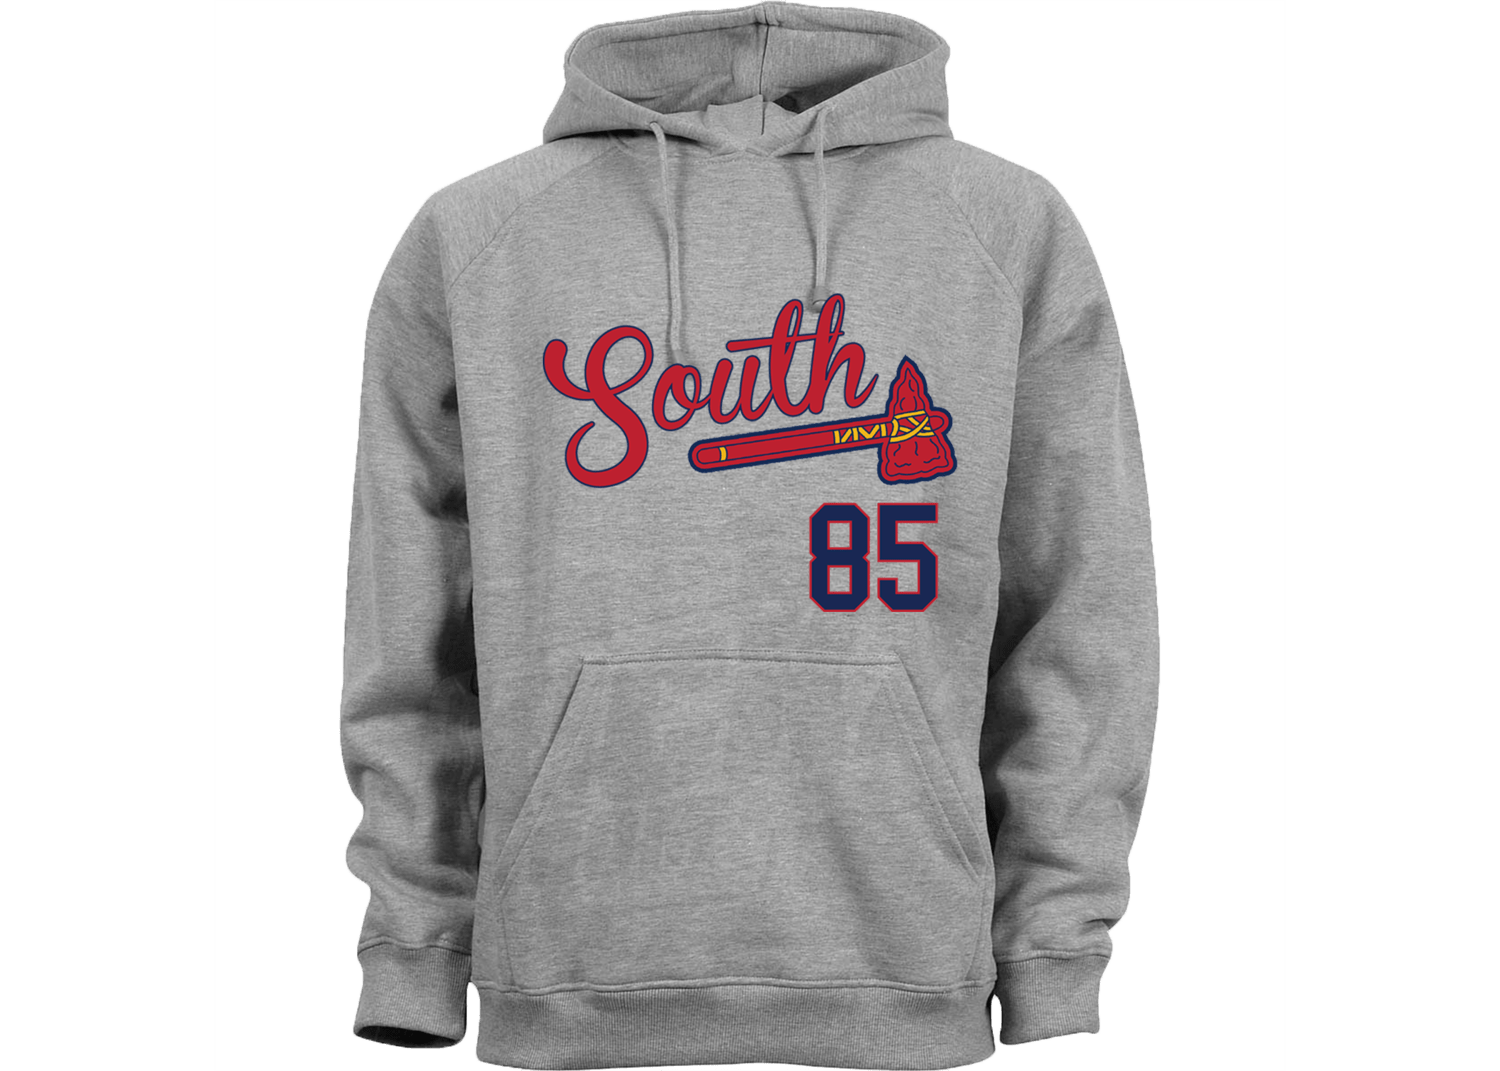 Hoodie clipart sudadera. South png transparente stickpng